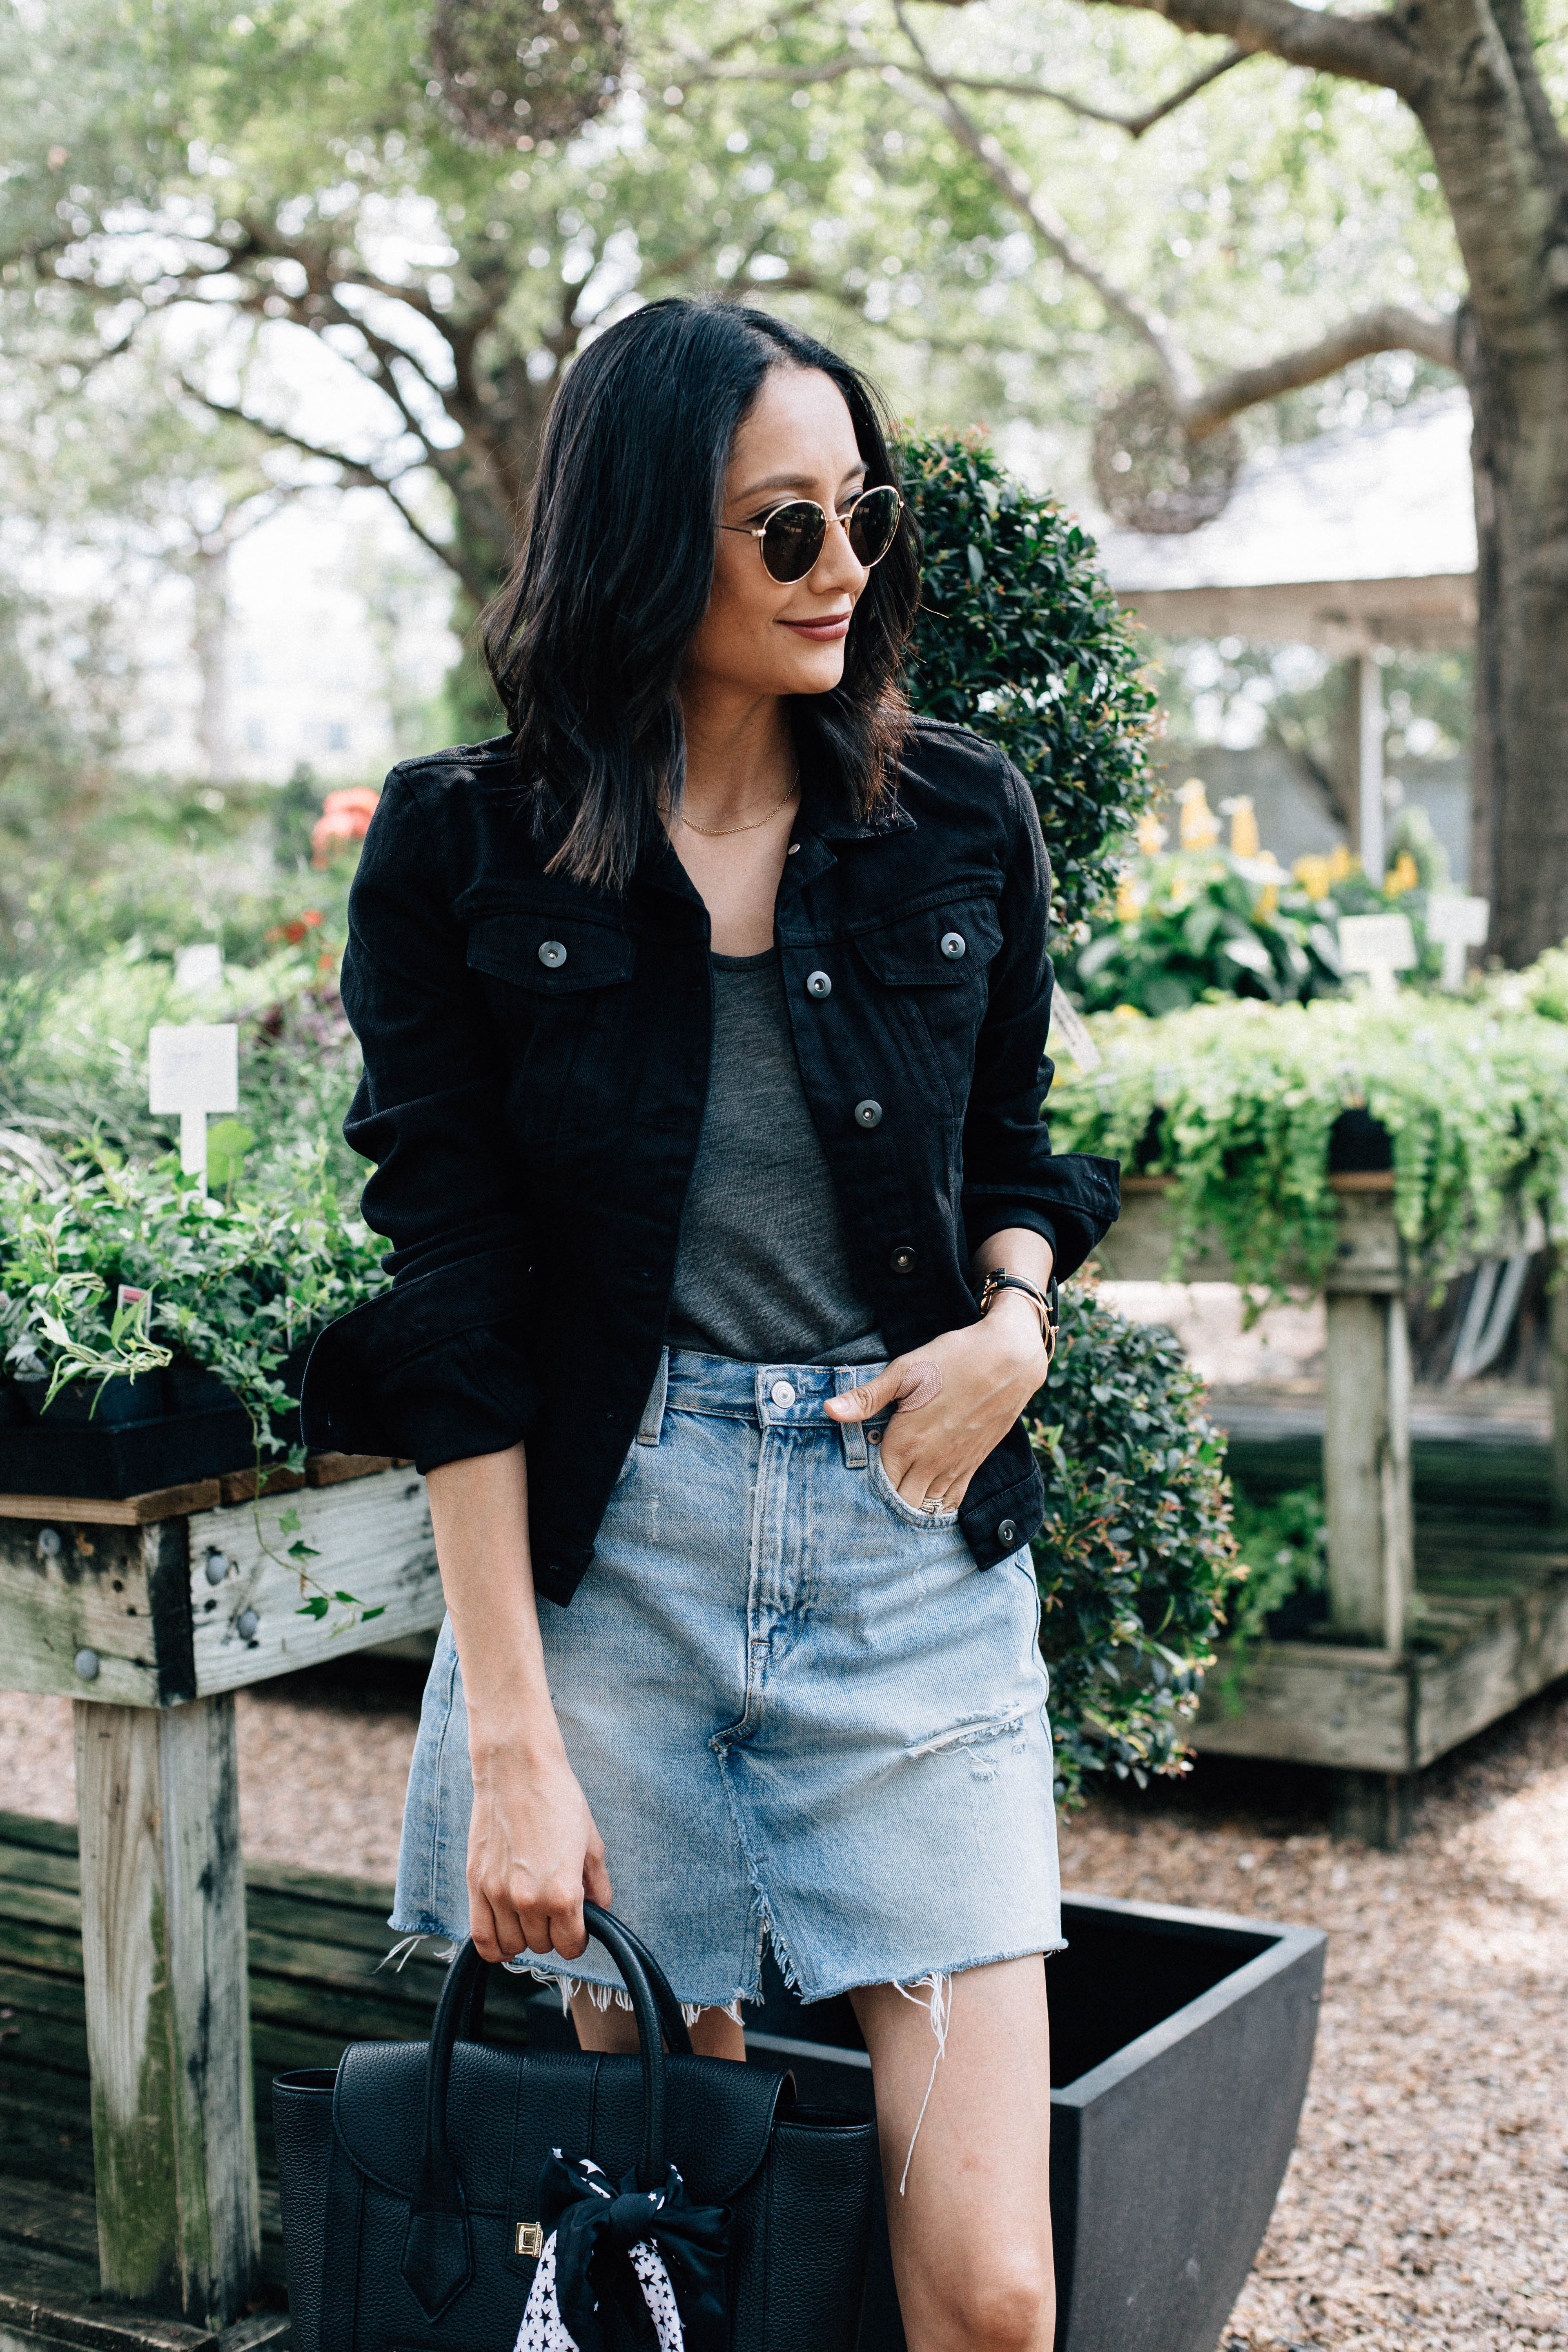 Lifestyle blogger Lilly Beltran of Daily Craving wearing a fall look with black denim jacket